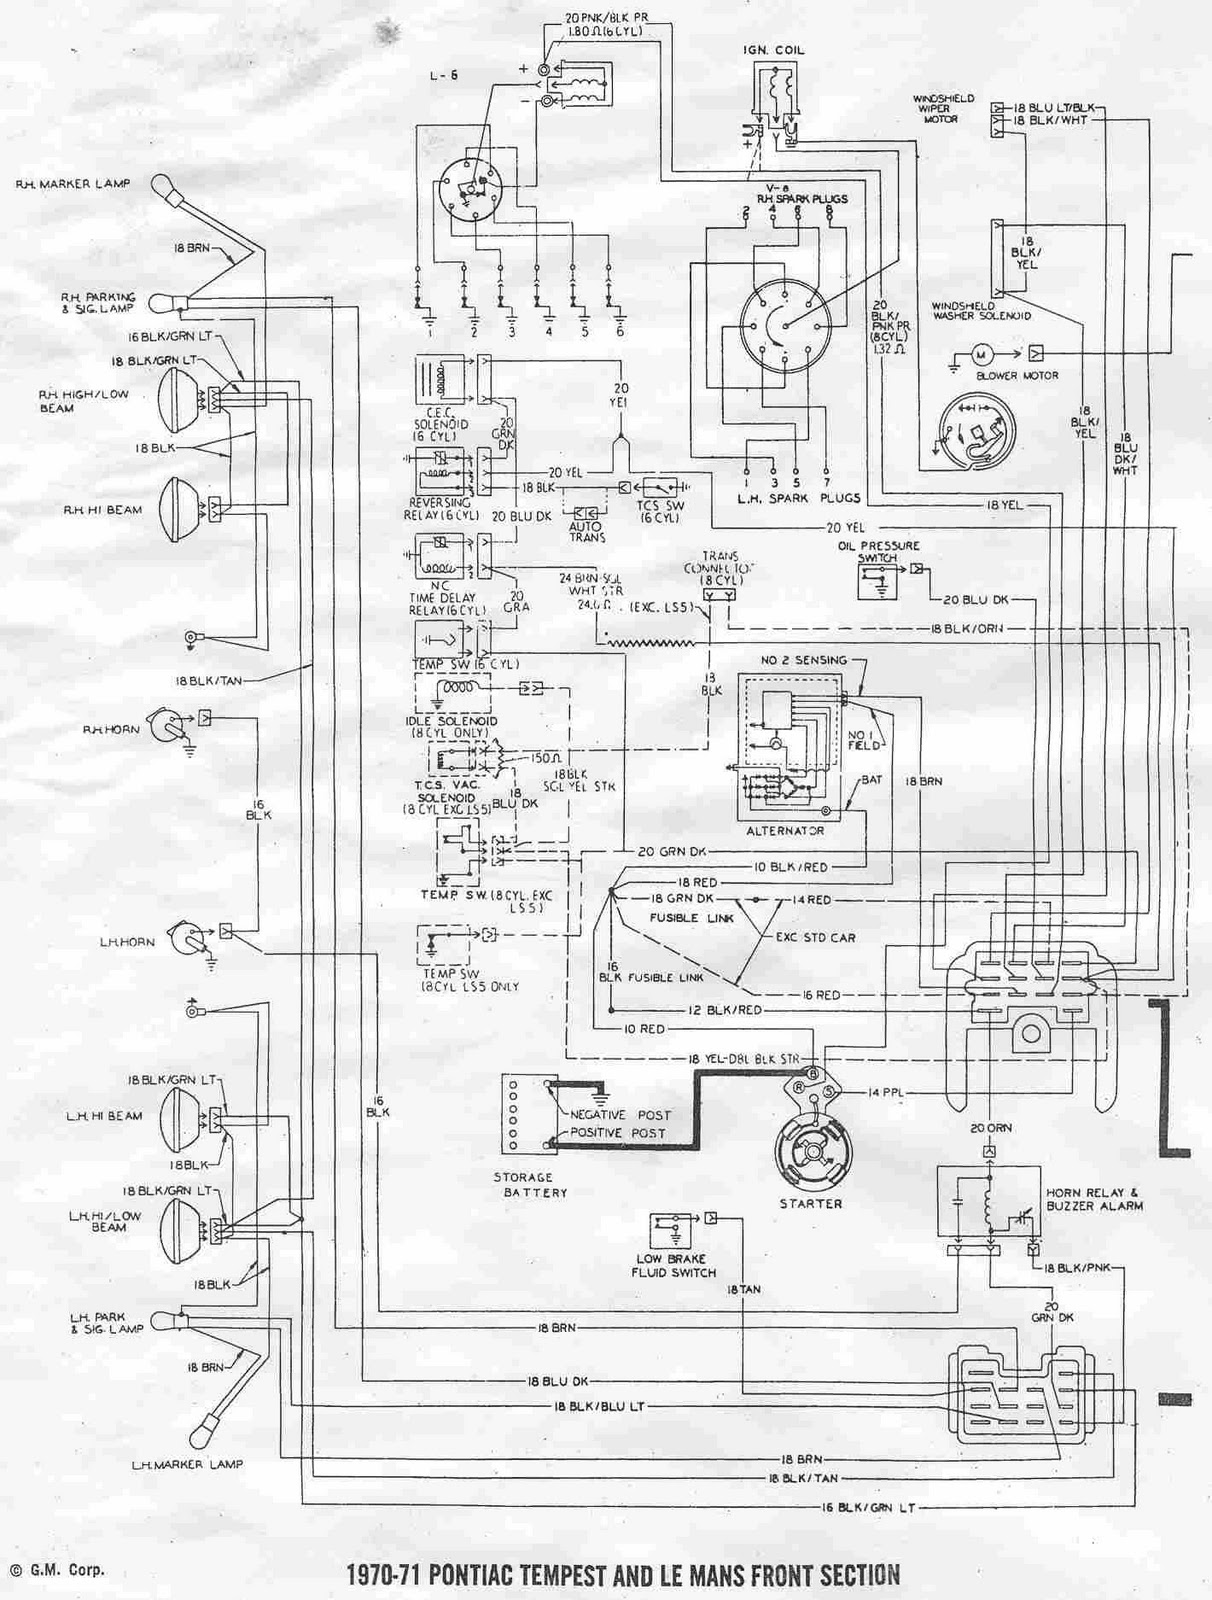 Vehicle Wiring Diagram For Mercury Monterey